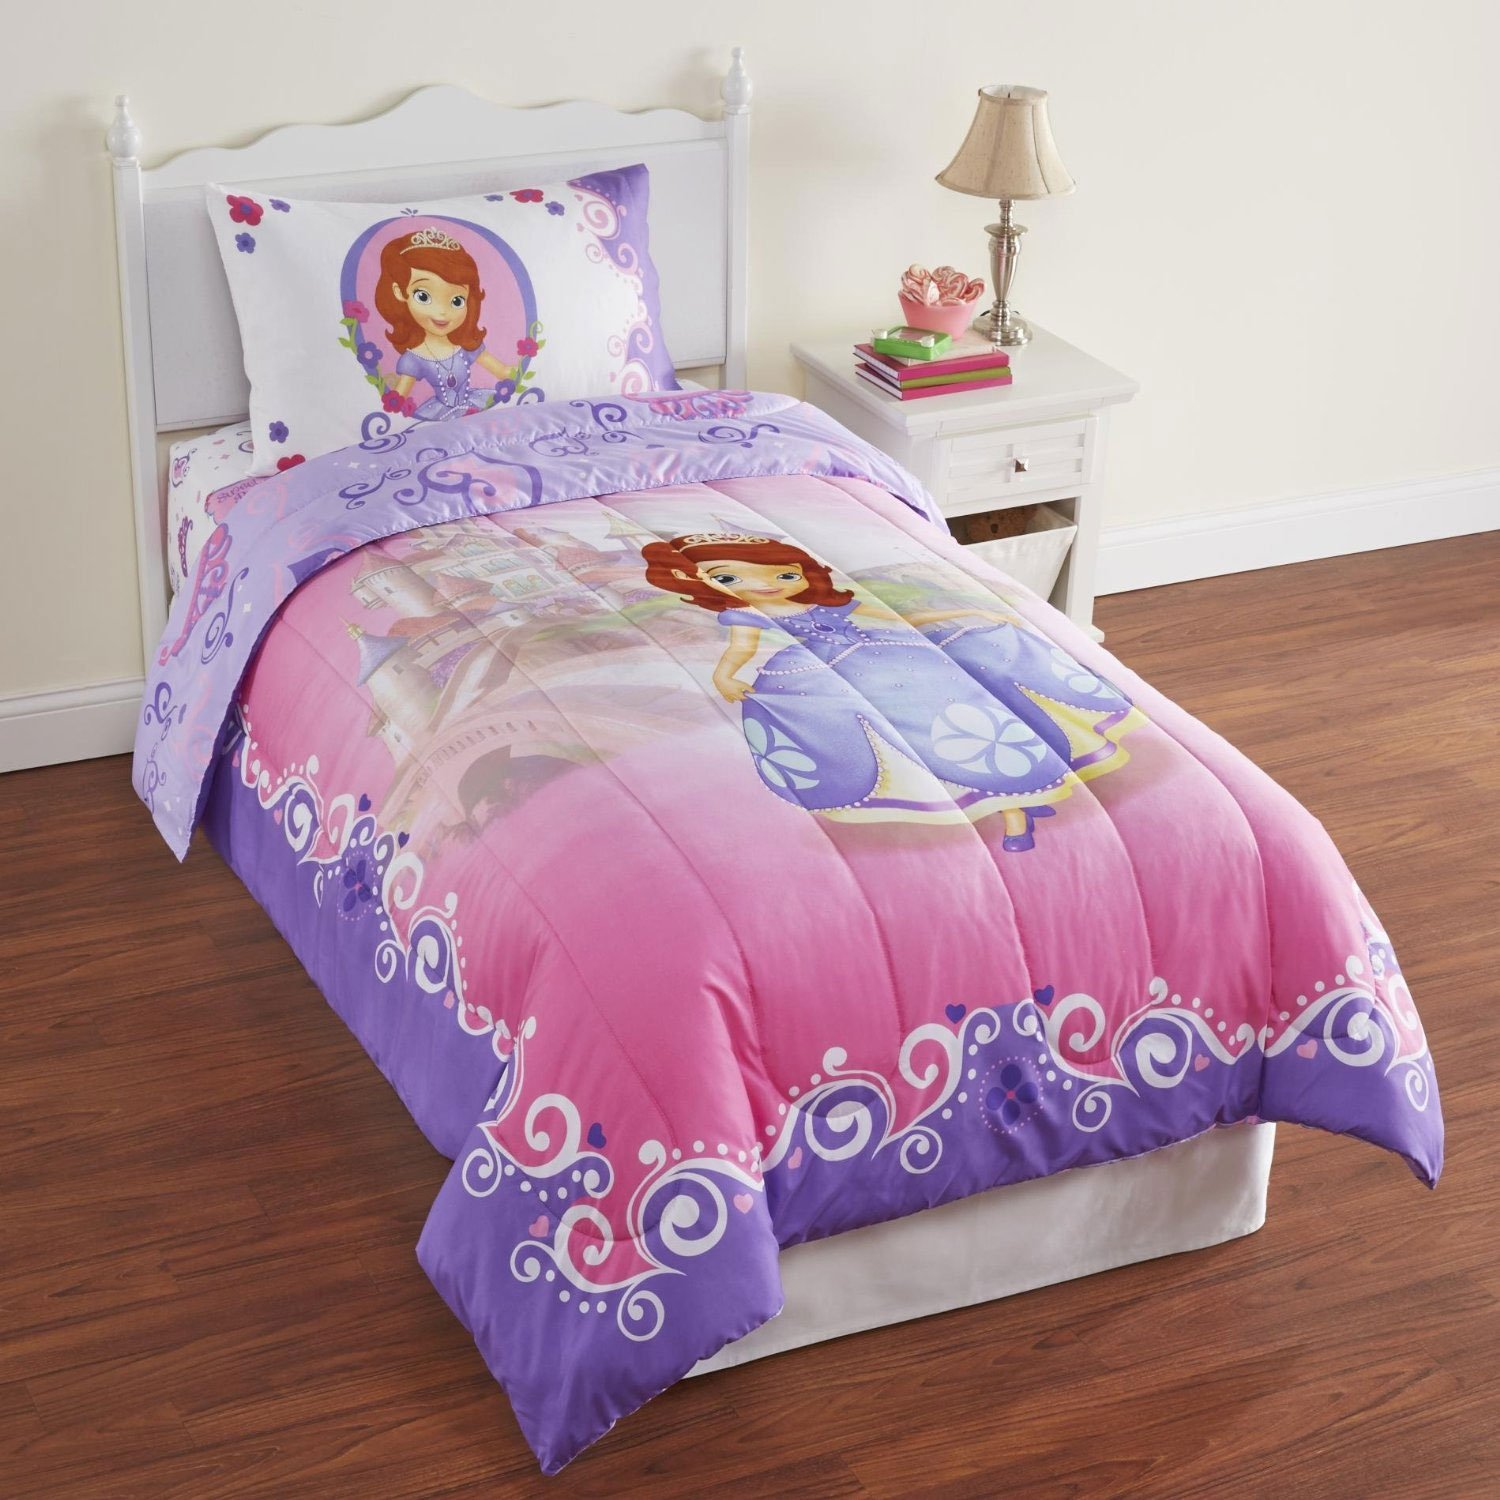 Design Princess Bedding amazon com 4pc sofia the first twin bedding set disney princess in training comforter and sheet home kitchen